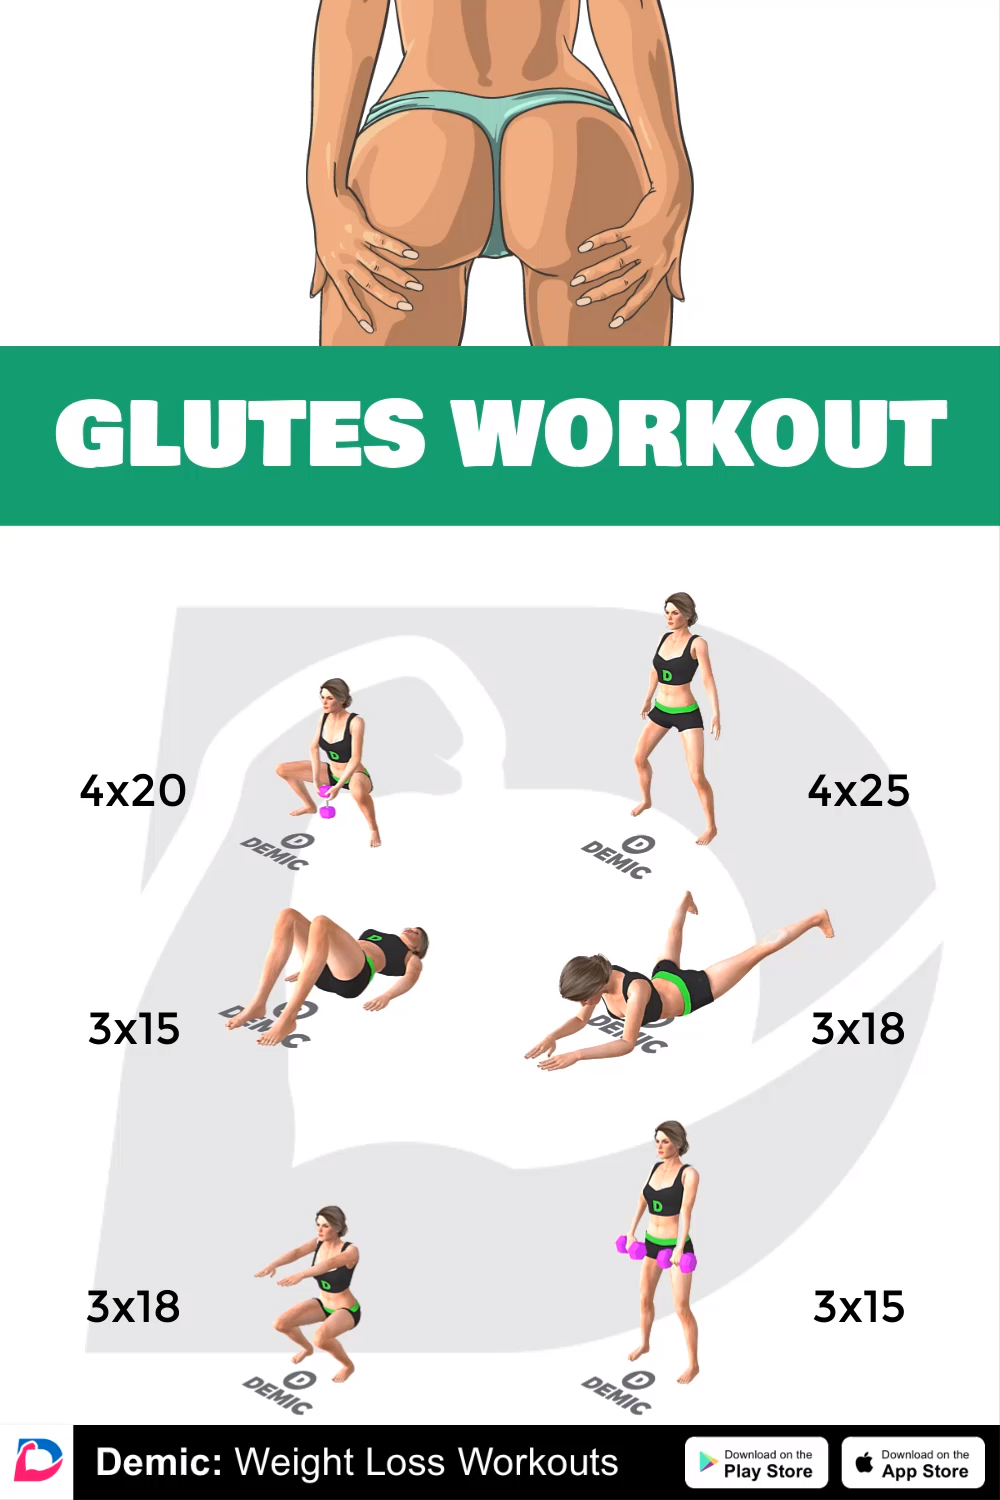 Glutes Workout -   13 fitness Mujer ejercicio ideas